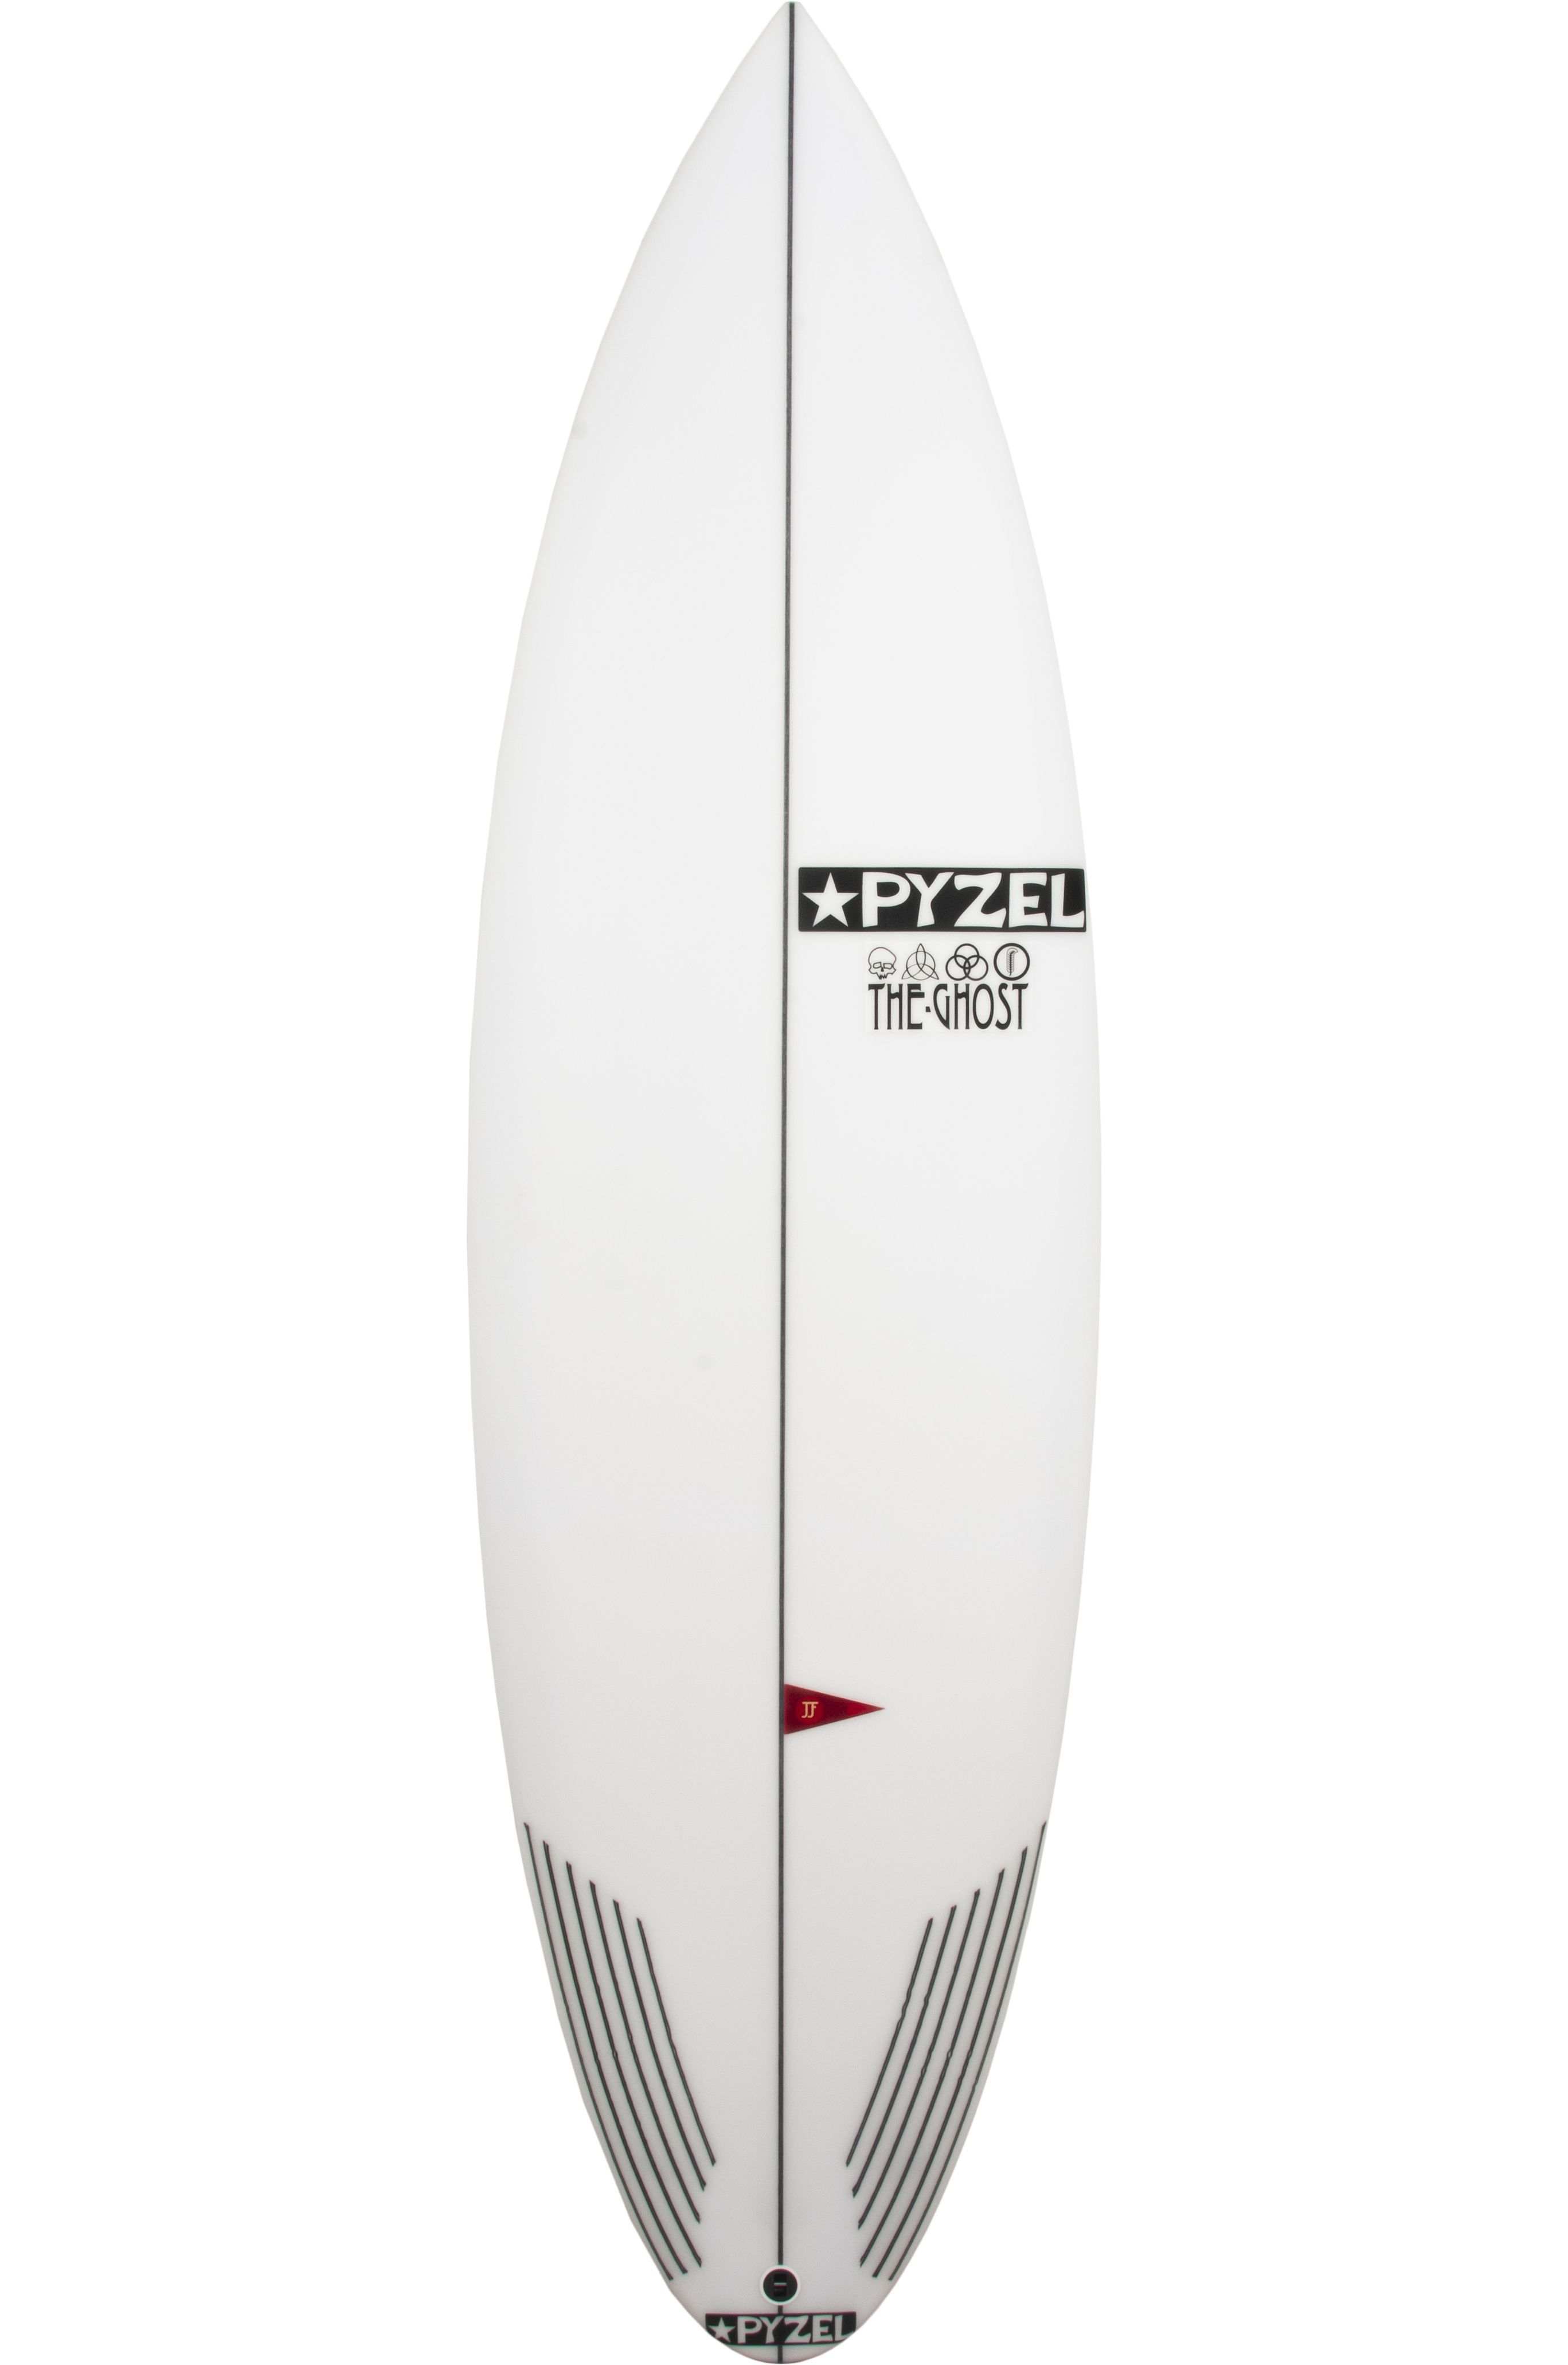 Pyzel Surf Board 6'4 GHOST Round Pin Tail - White FCS II Multisystem 6ft4